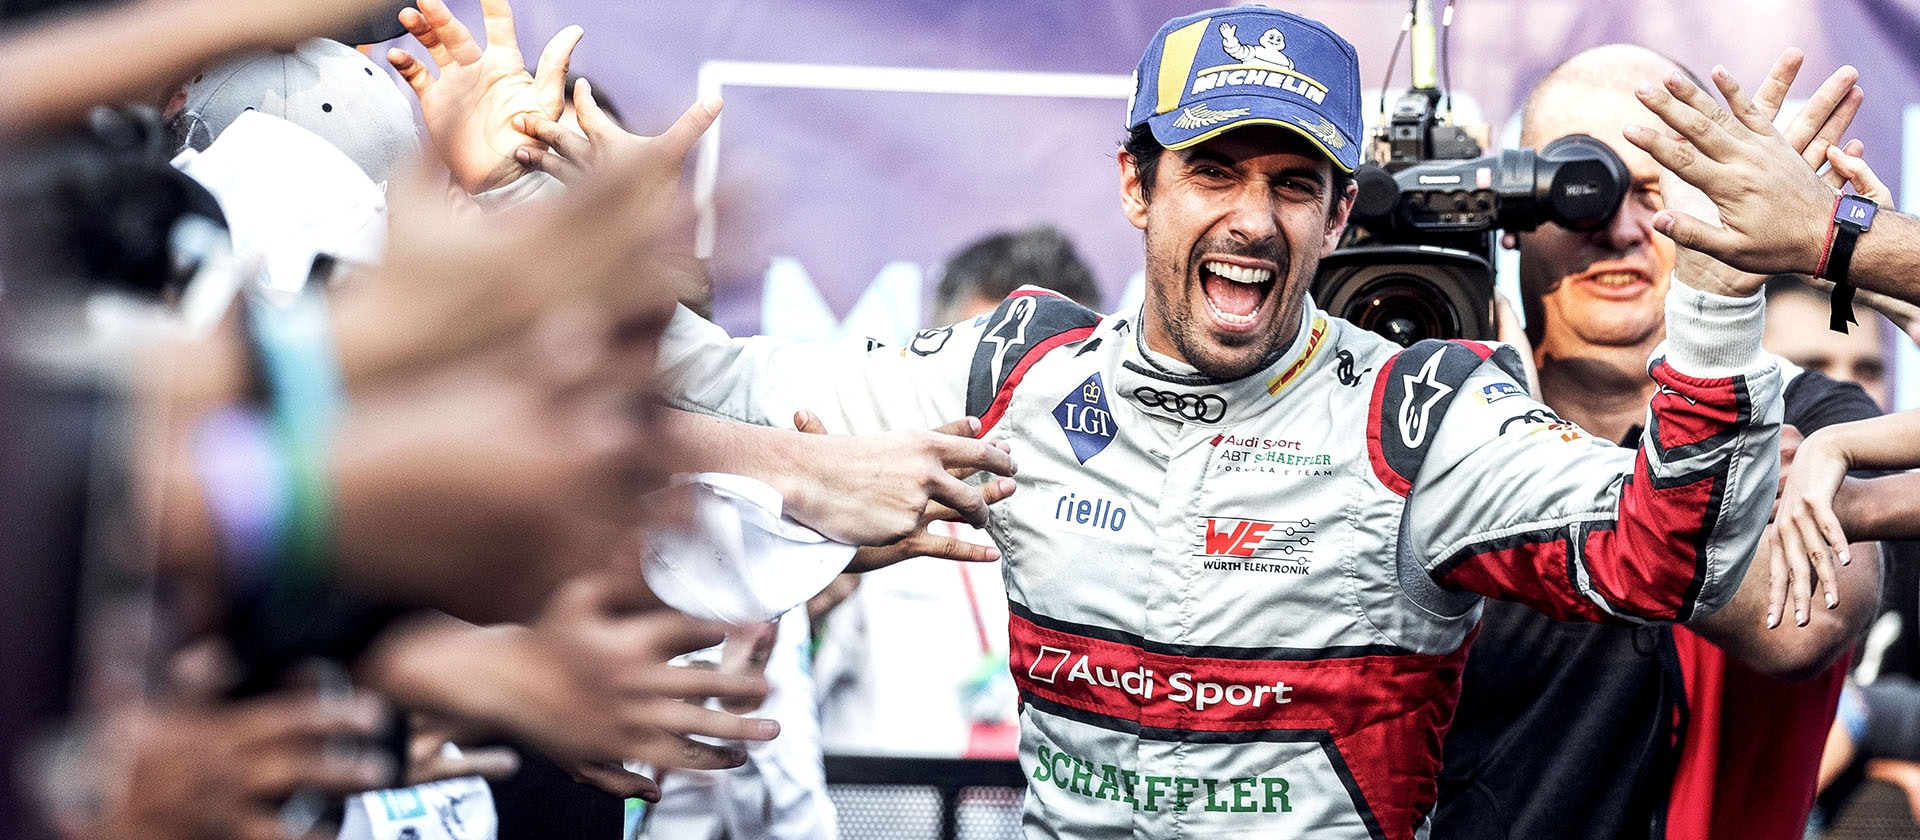 Lucas di Grassi on the podium